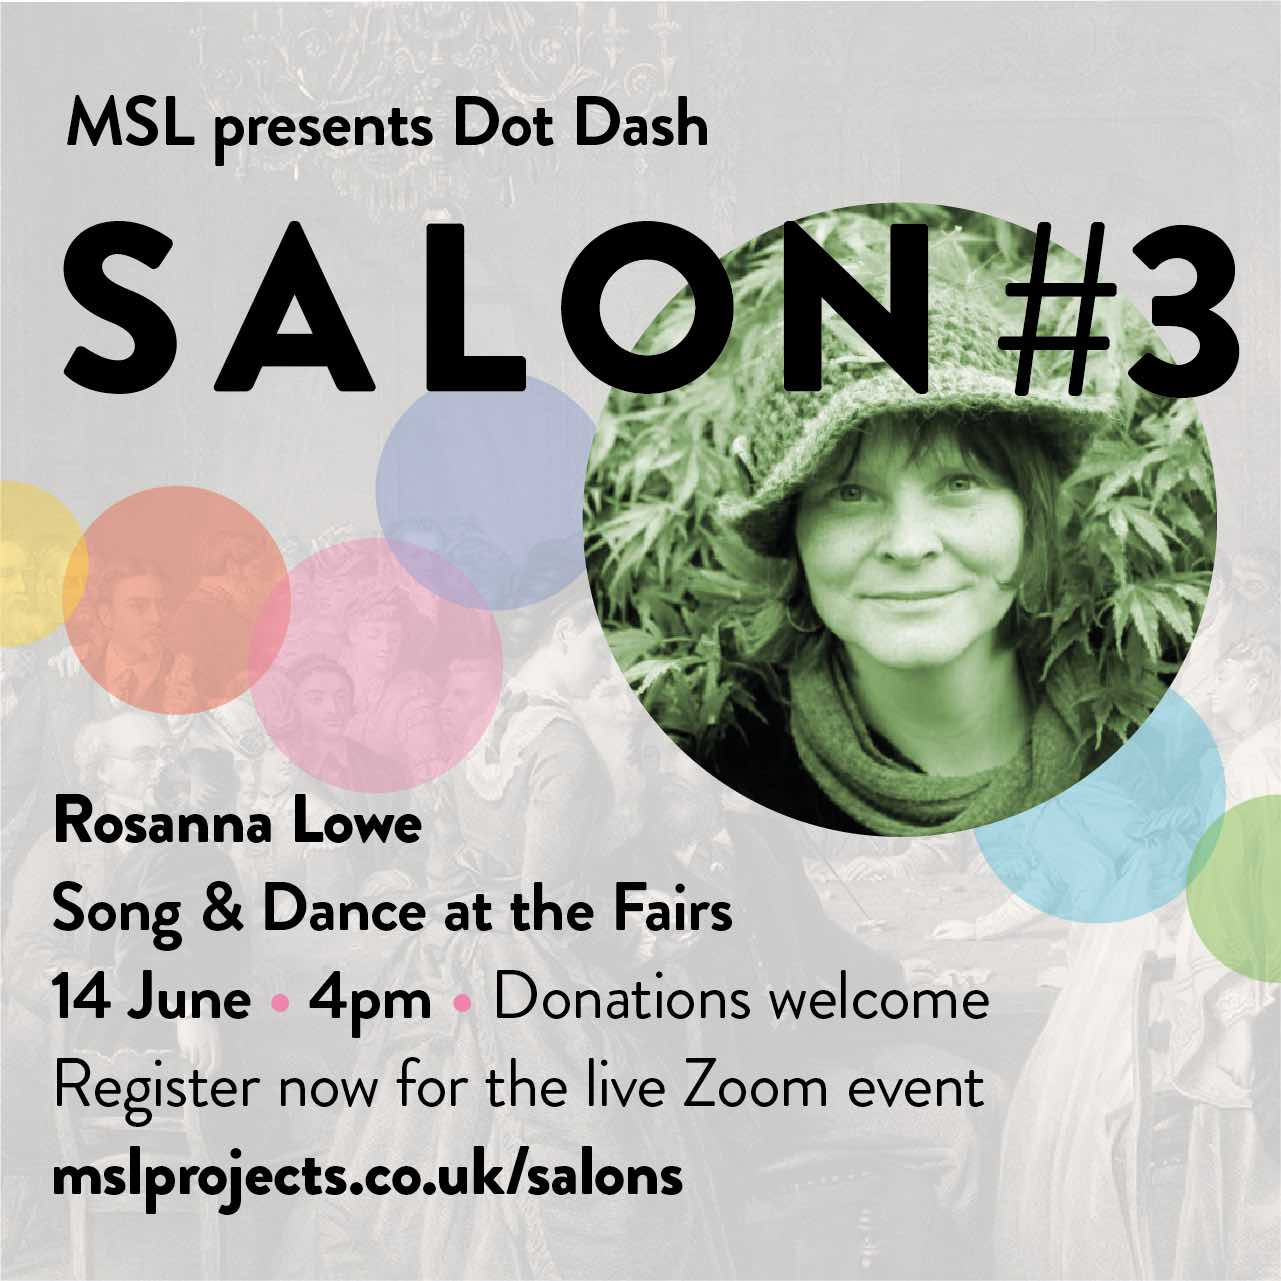 Salon 3 Song & Dance at the Fairs 14 June 4pm for MSL Projects